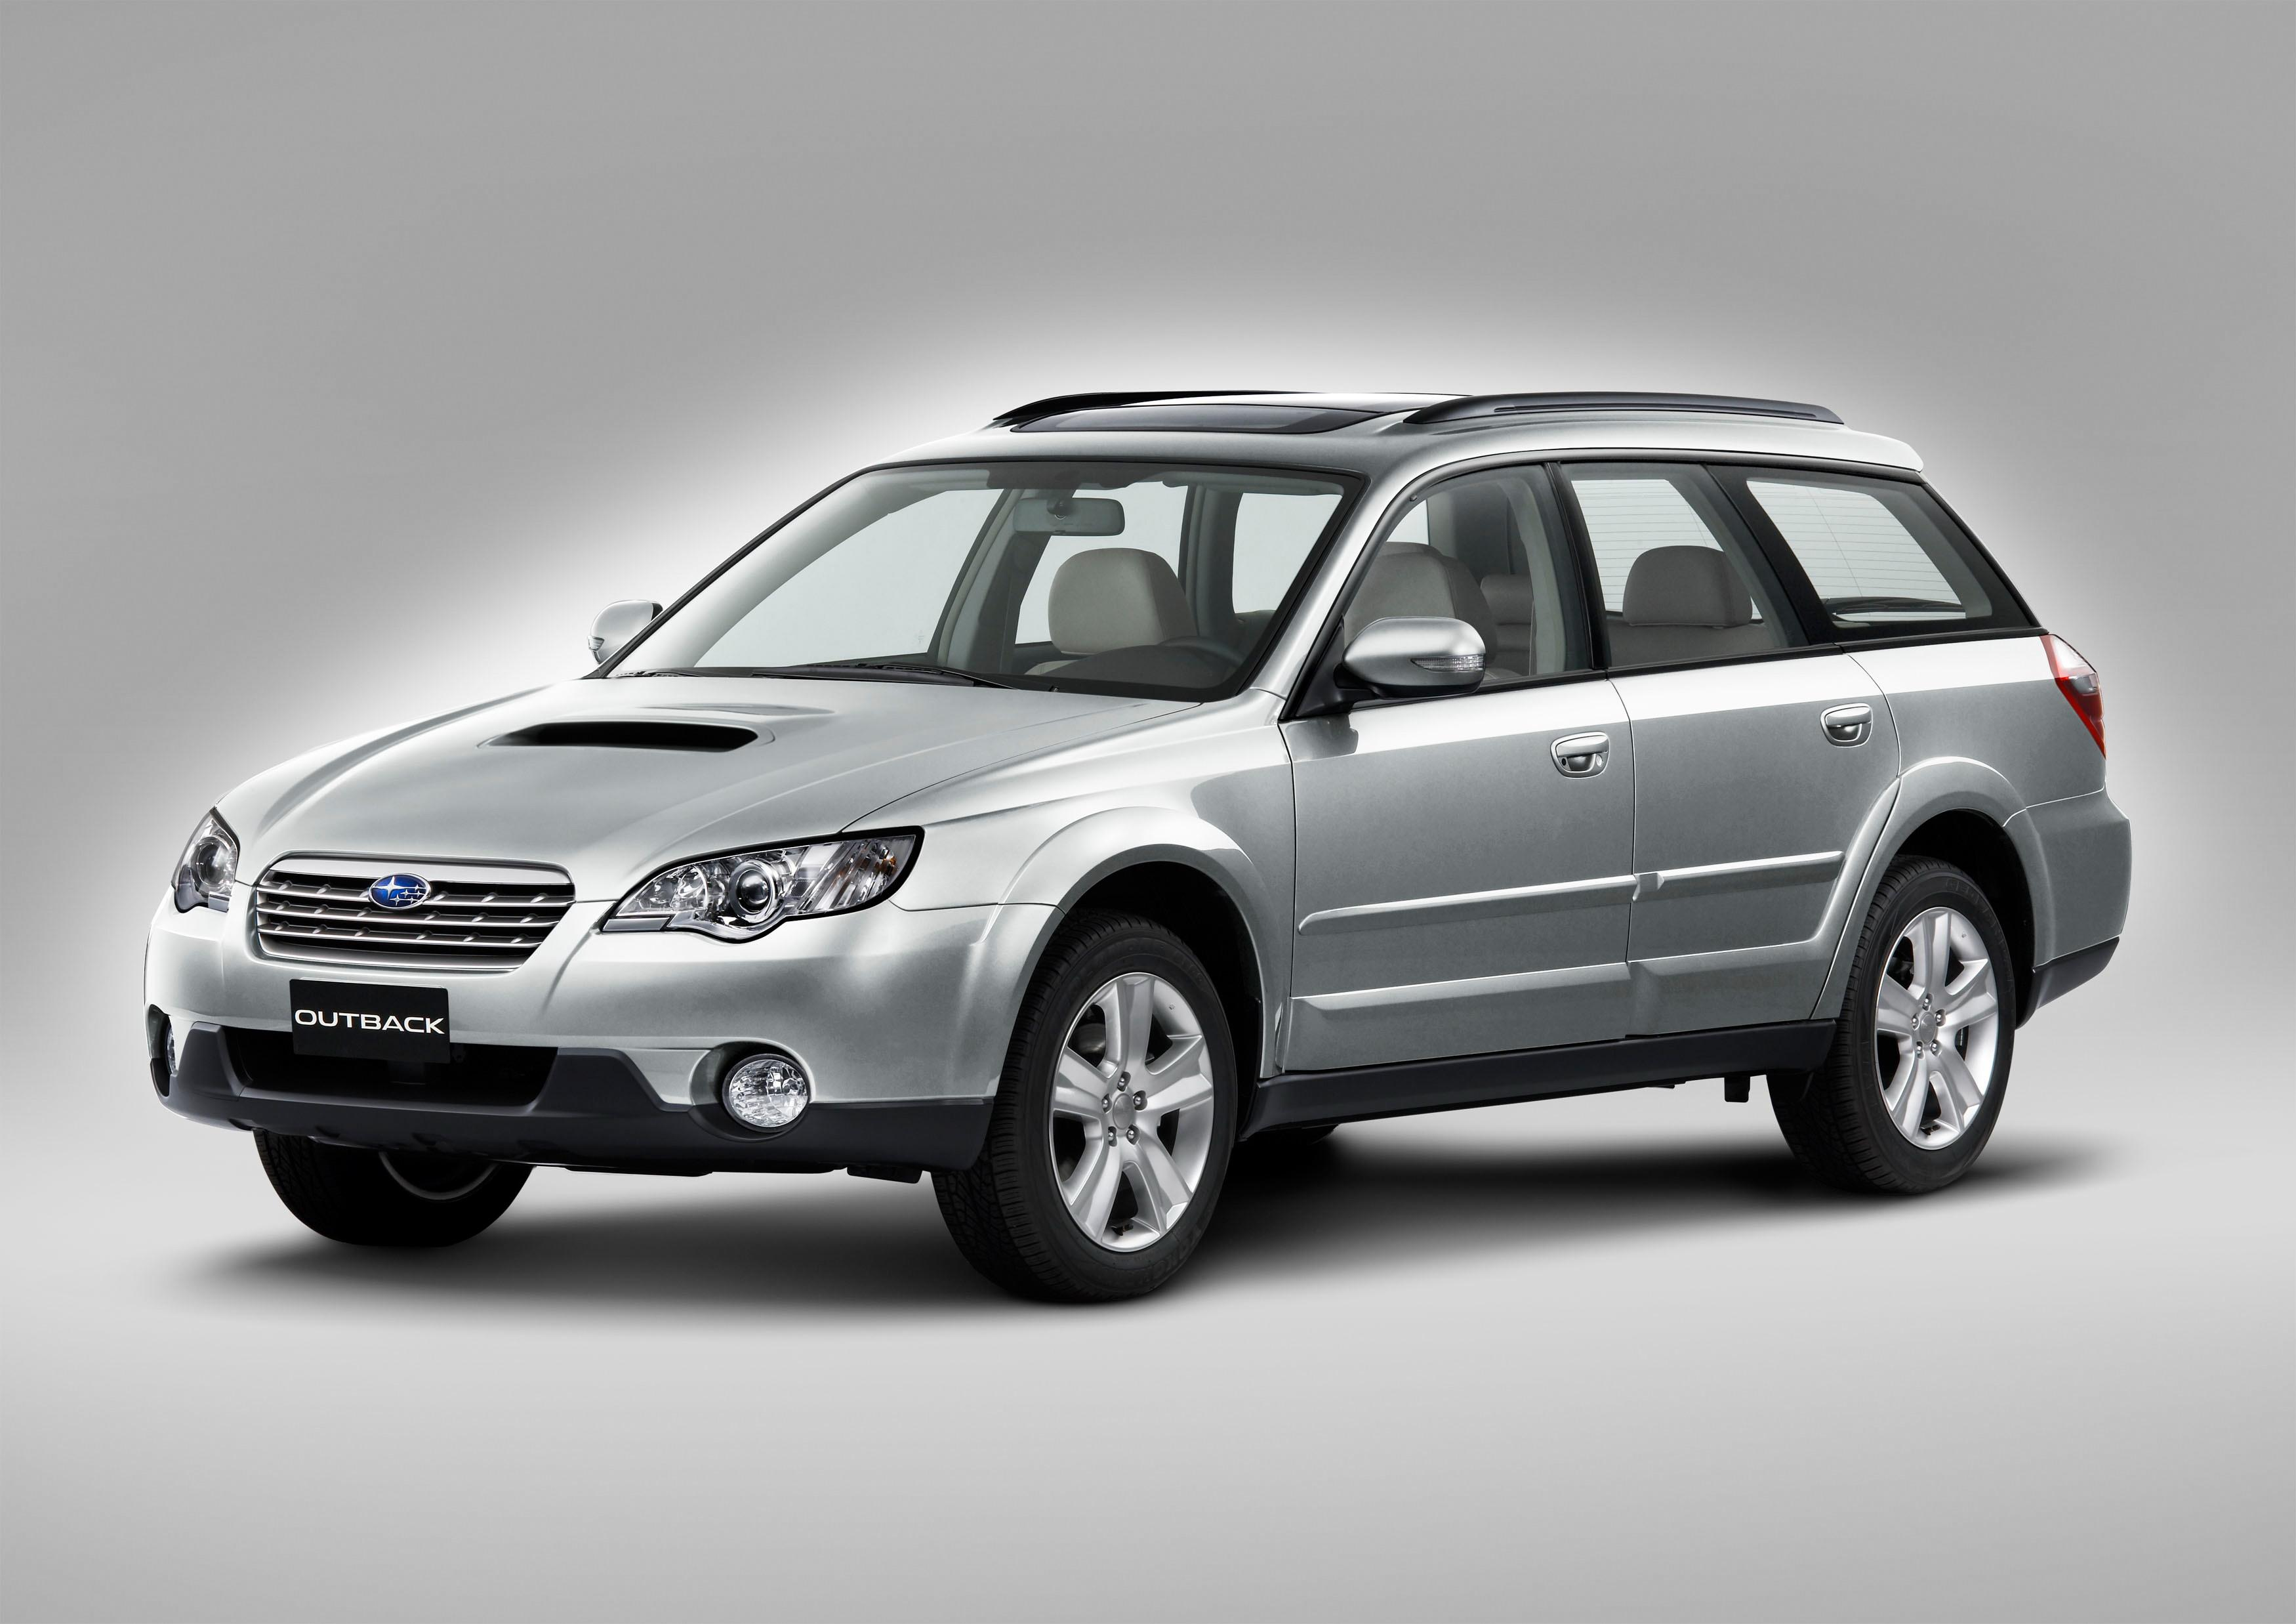 2008 subaru legacy 2 0d and outback 2 0d review top speed. Black Bedroom Furniture Sets. Home Design Ideas